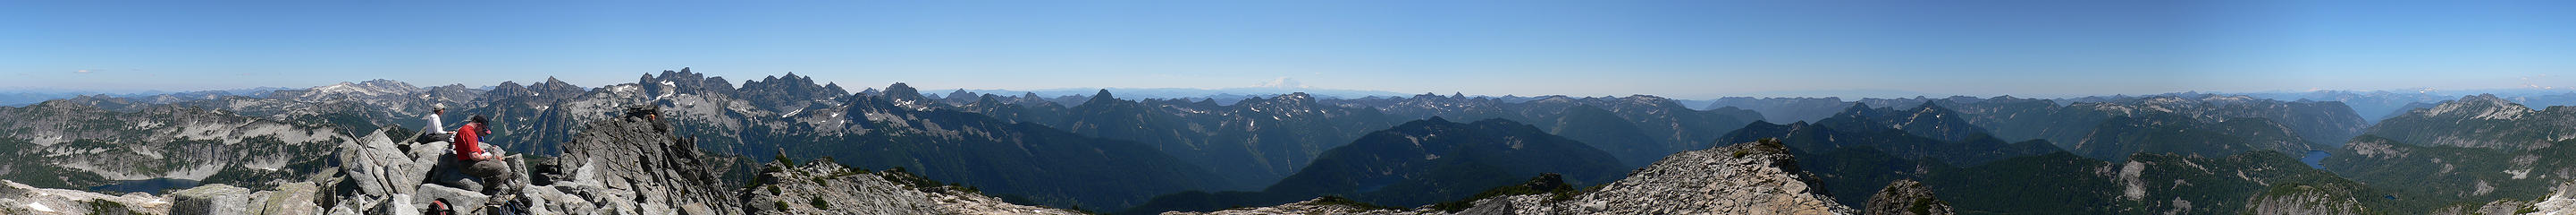 Panorama from Big Snow Mtn. 8.13.06.